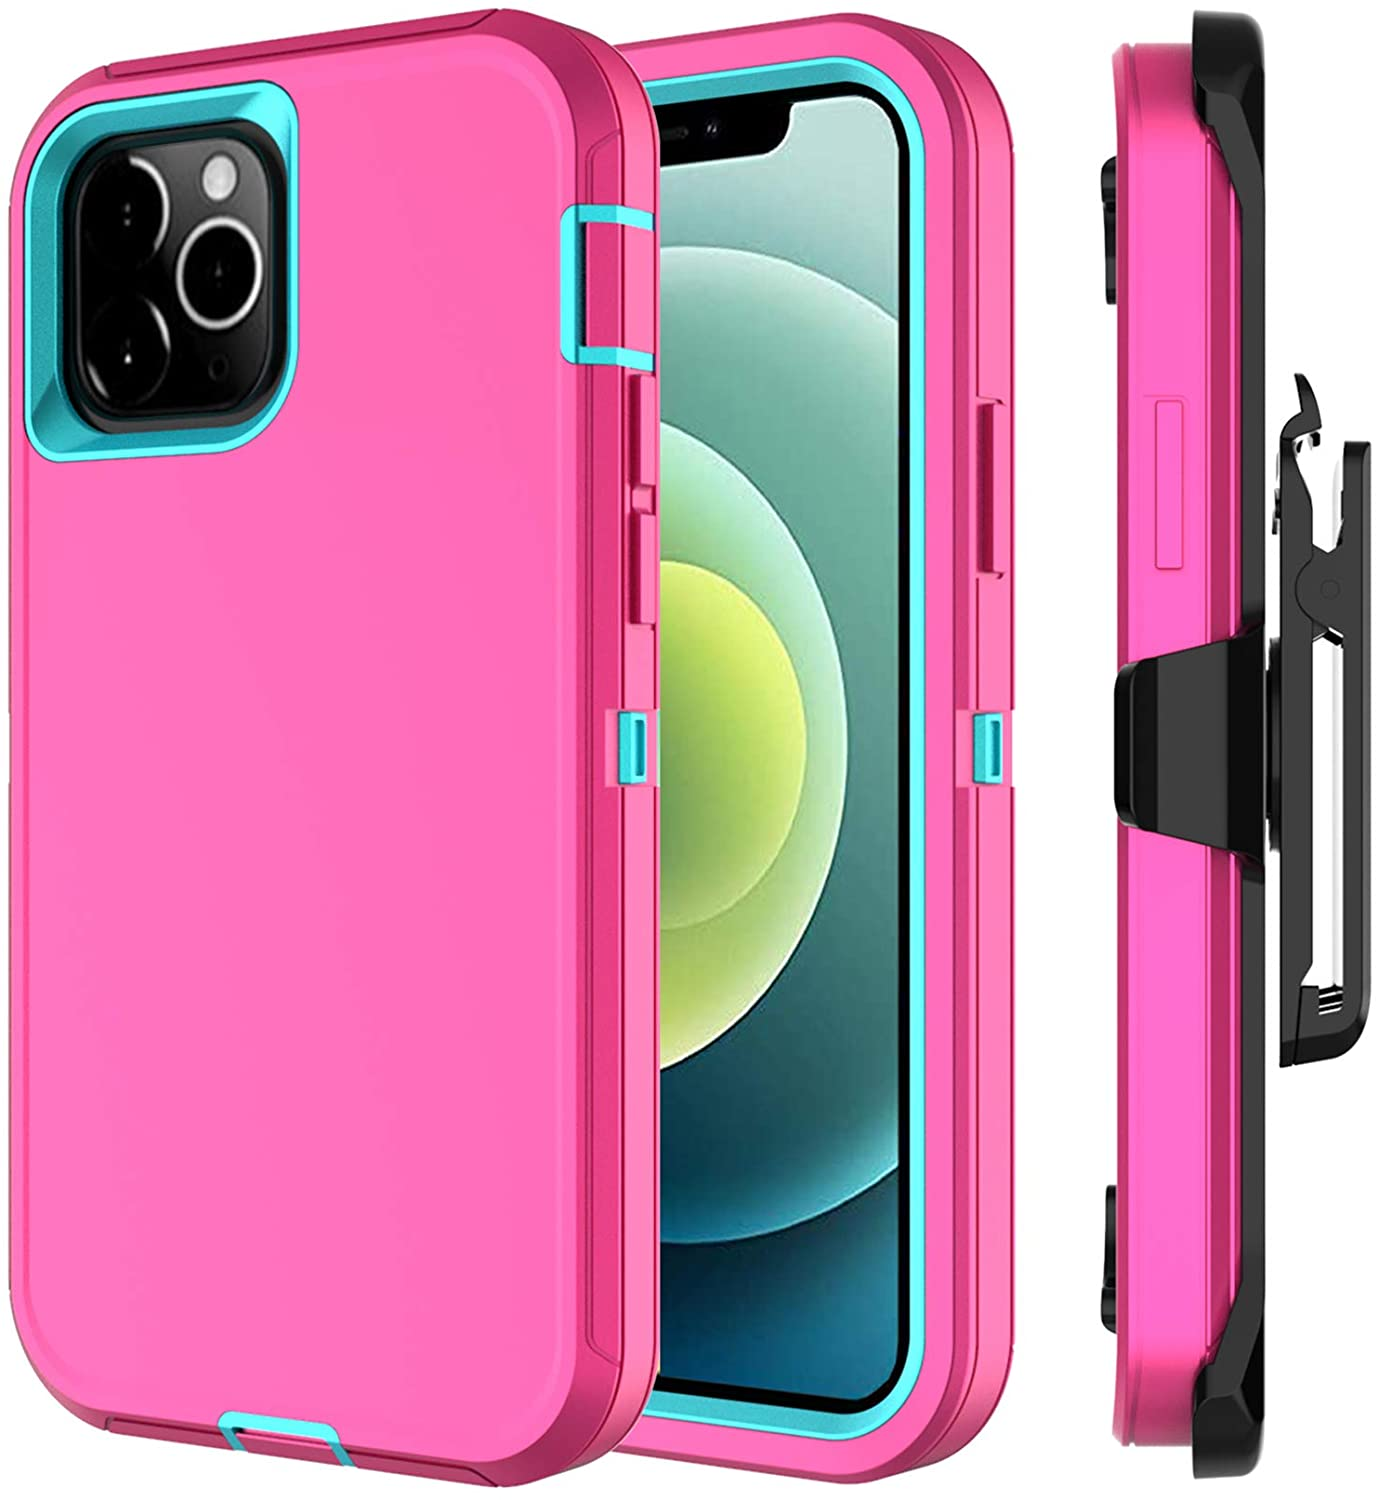 Annymall Compatible with iPhone 12 Case, Compatible with iPhone 12 Pro Case Built in Screen Protector Heavy Duty Shockproof Rugged Kickstand Holster for iPhone 12/12 Pro Cover (Pink/Blue)